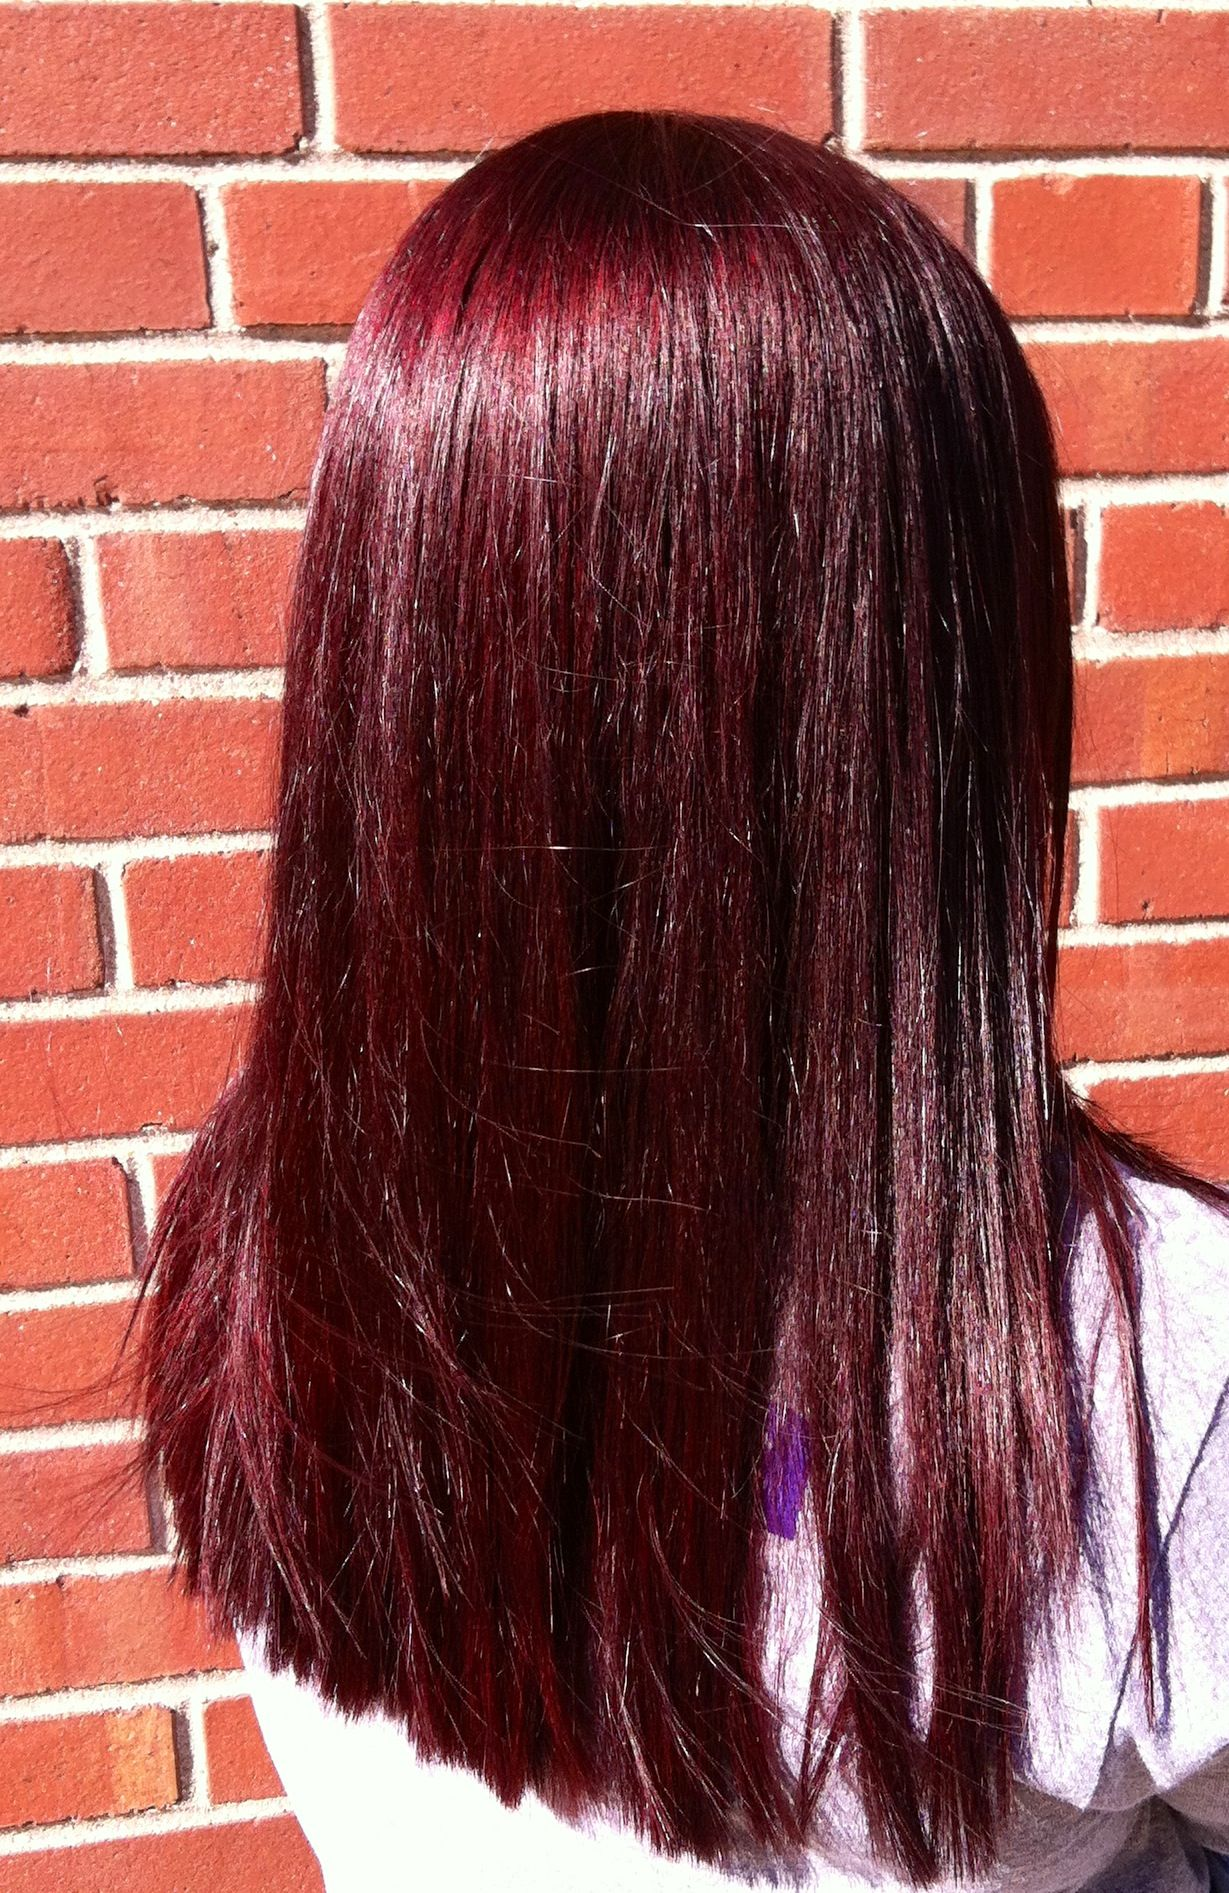 Kenra Color Is Amazing 4rr 6r With Red Booster And You